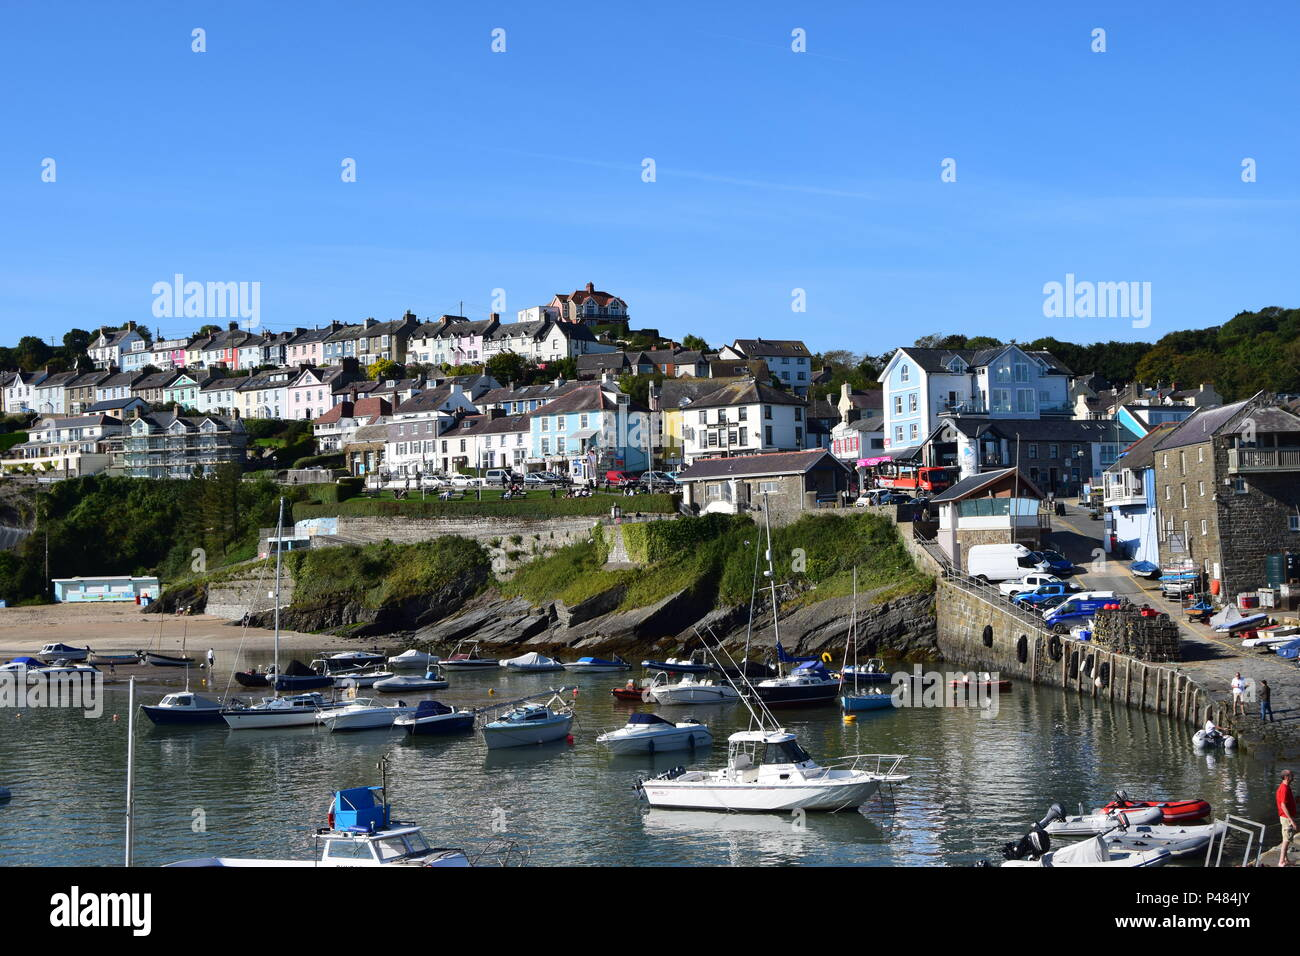 Quaint quayside at New Quay Wales - Stock Image